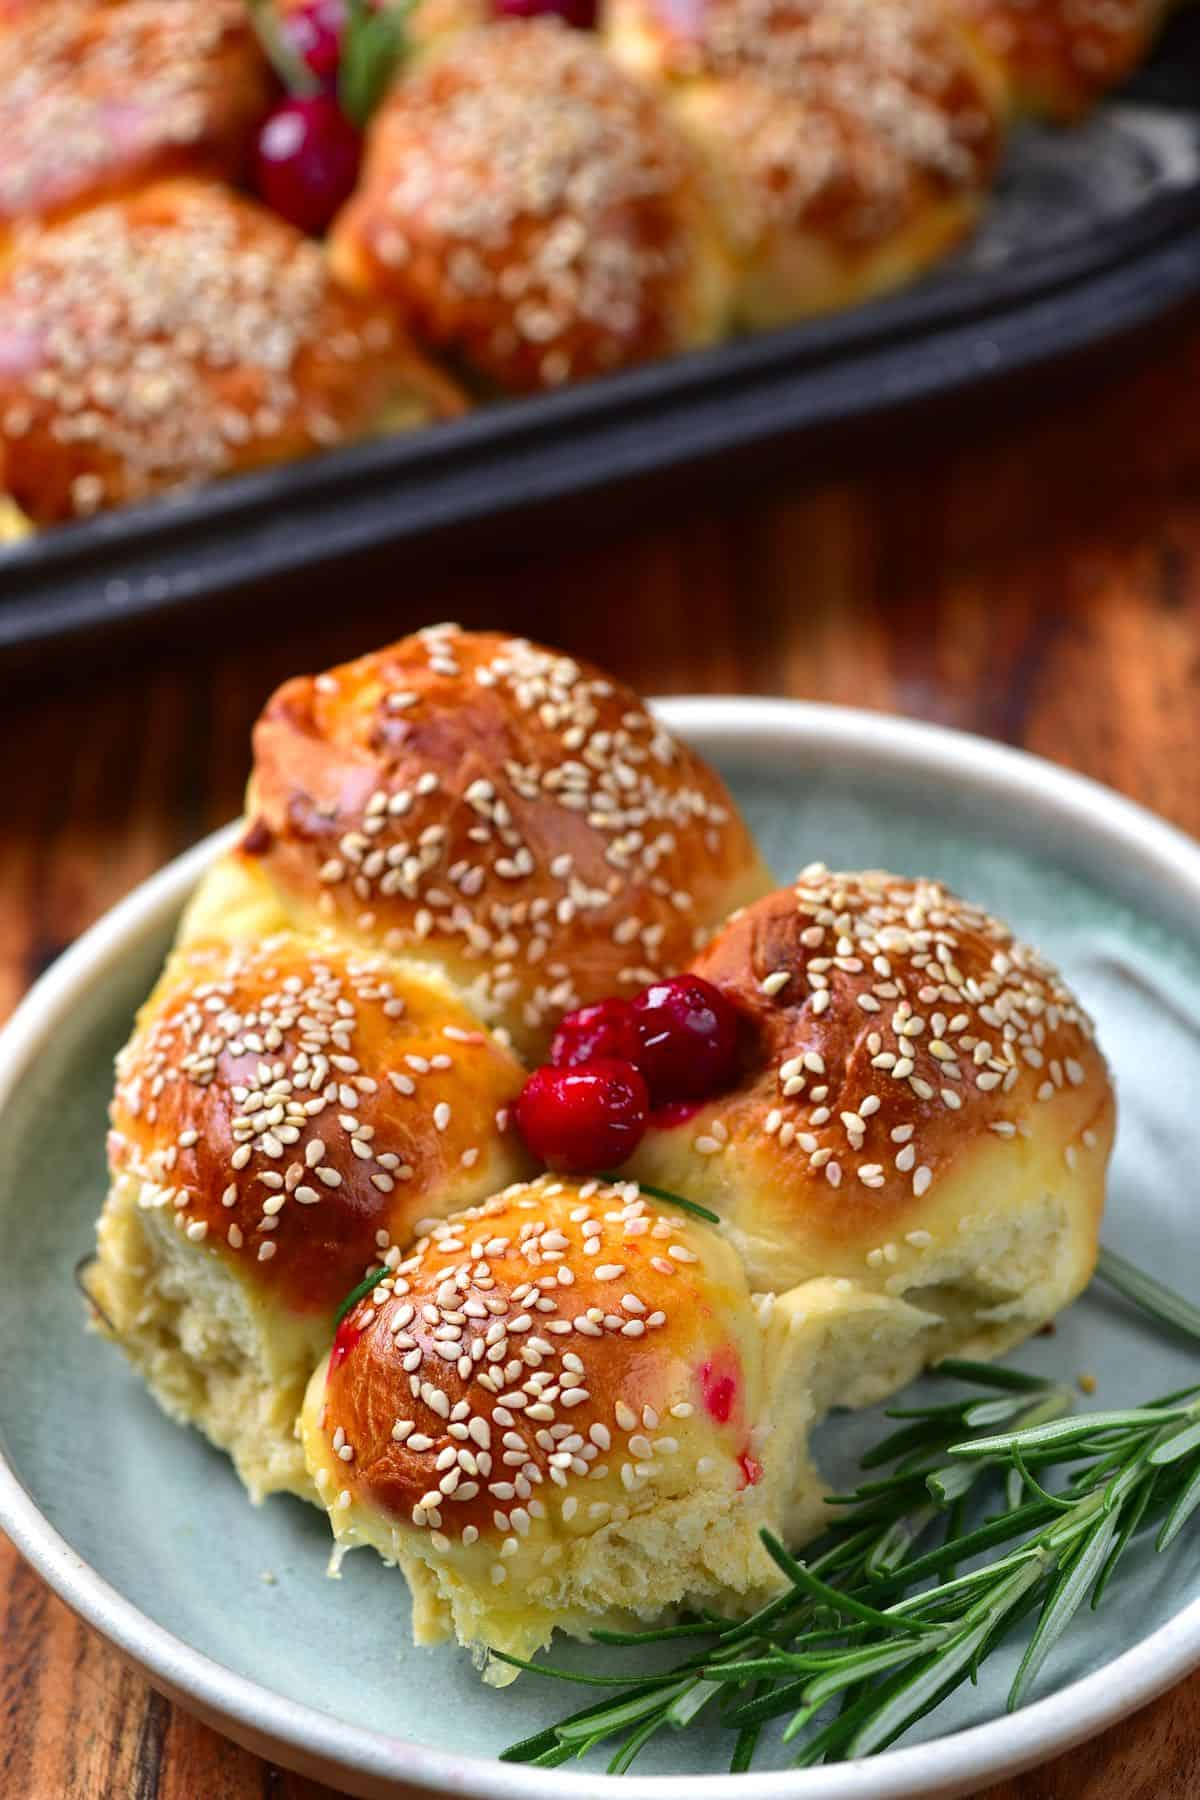 Four cheese buns in a plate with some rosemary and cranberries